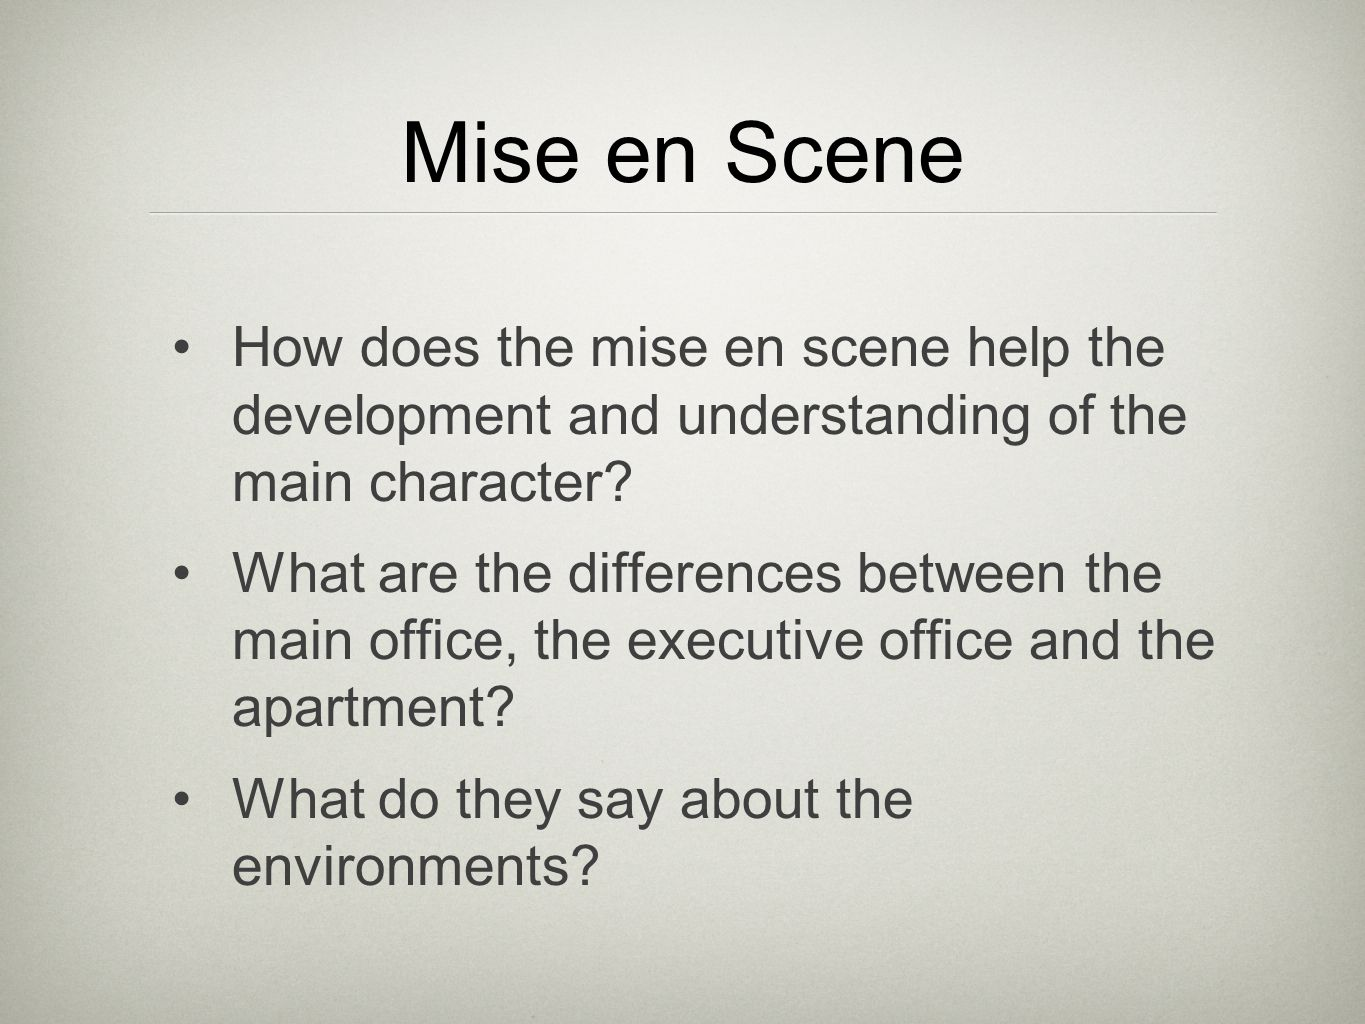 How does the mise en scene help the development and understanding of the main character? What are the differences between the main office, the executi